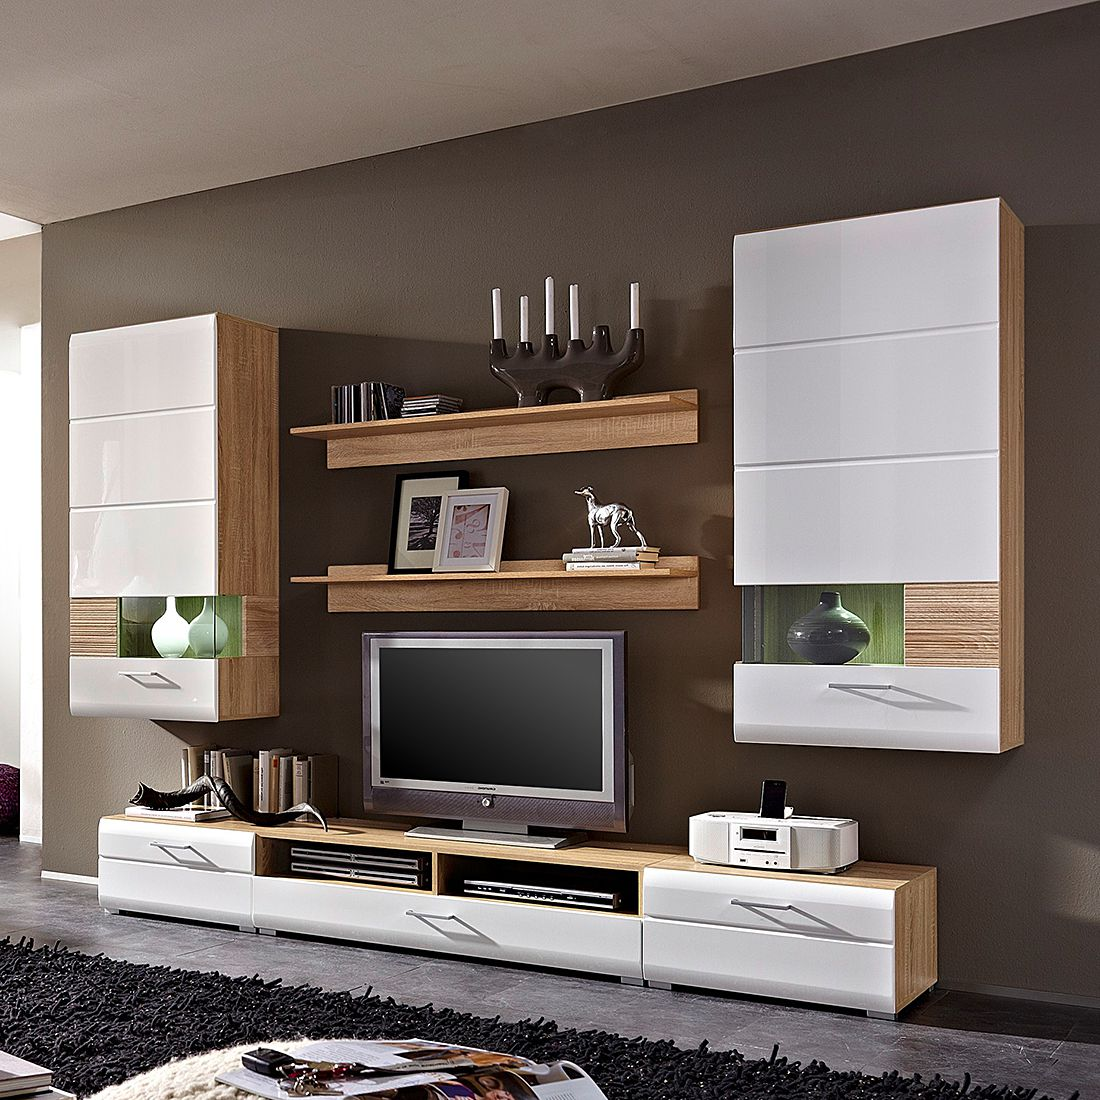 wohnwand avida i 7 teilig sonoma eiche dekor wei hochglanz. Black Bedroom Furniture Sets. Home Design Ideas